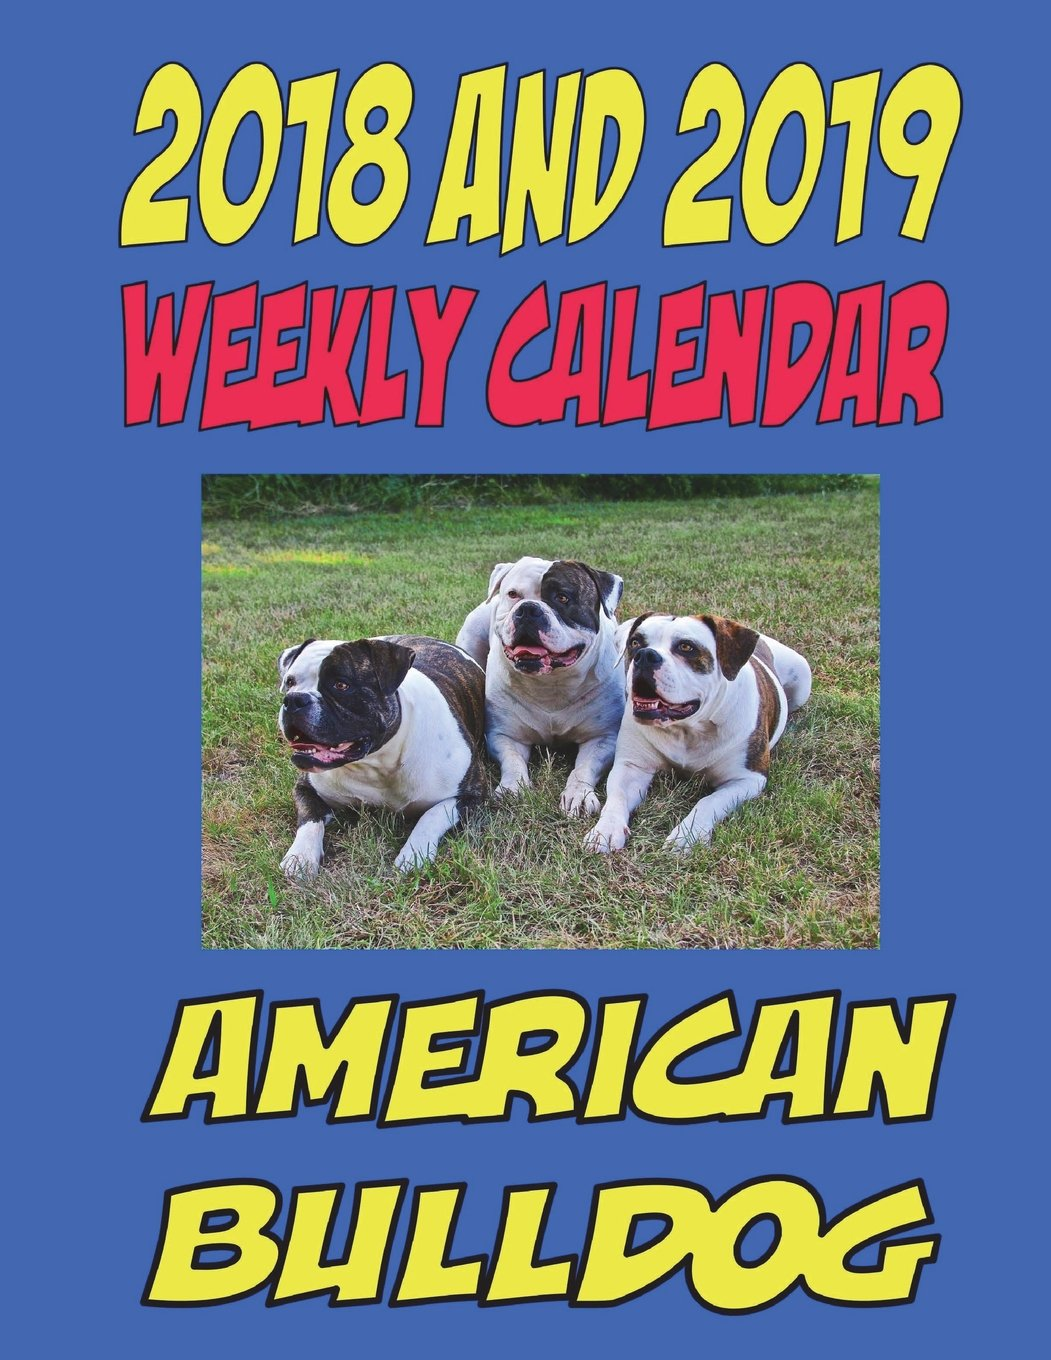 Download 2018 and 2019 Weekly Calendar American Bulldog: Dog jokes and quotes, information, and plenty of space for more. pdf